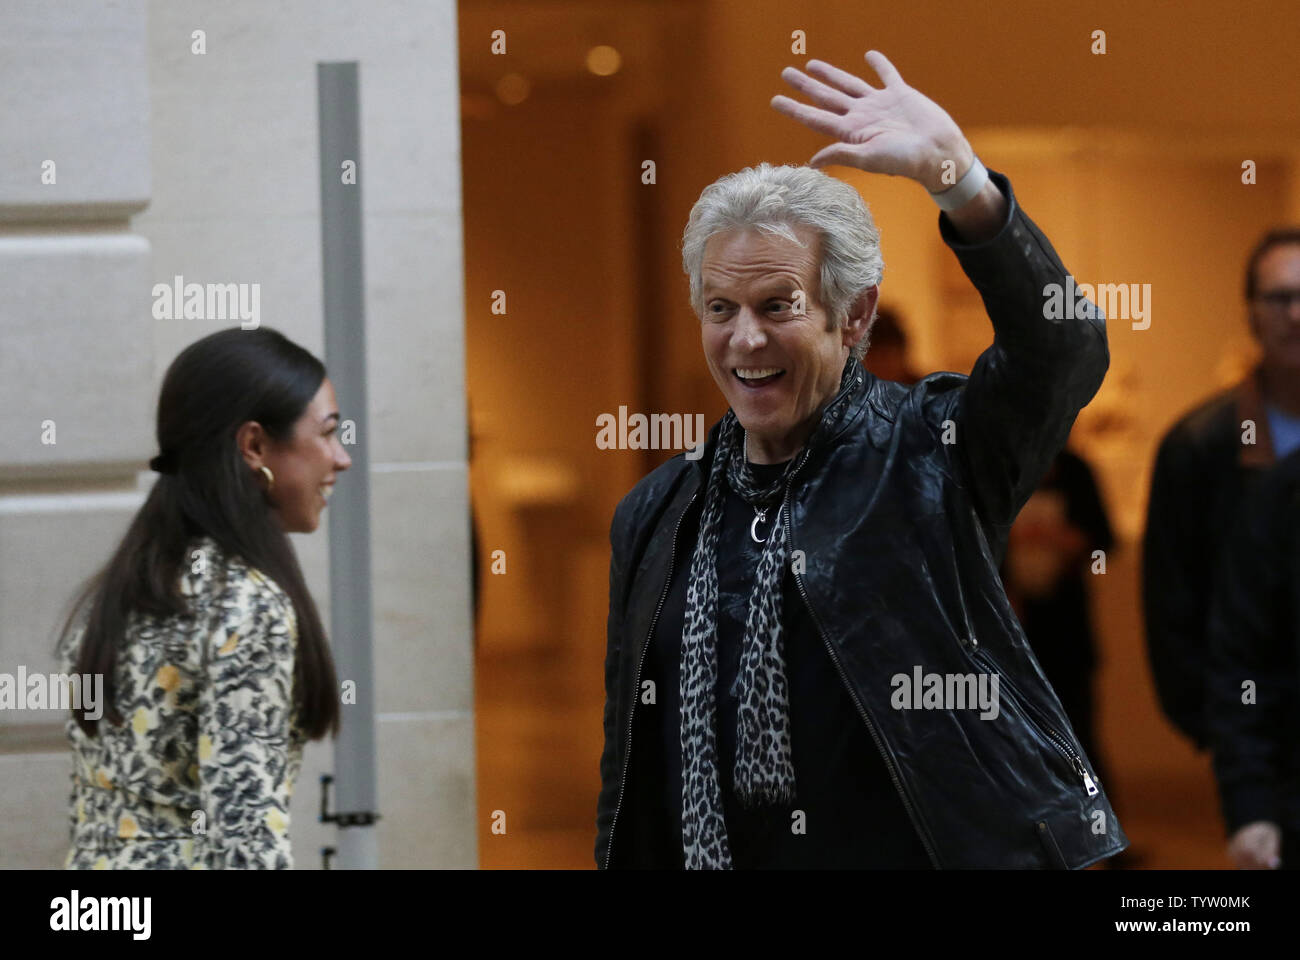 Don Felder waves when he arrives at a press preview for Play It Loud: Instruments of Rock & Roll at Metropolitan Museum of Art on April 1, 2019 in New York City. A groundbreaking exhibition presenting a spectacular array of iconic instruments of rock and roll will go on view at The Met on April 8. The exhibition includes Chuck Berry's electric guitar ES-350T (1957), which was used to record 'Johnny B. Goode'; a reconstructed performance rig from Eddie Van Halen as it appeared onstage in 1978; Lady Gaga's custom-designed piano; Stevie Ray Vaughan's composite stratocaster 'Number One'; Joan Jett - Stock Image